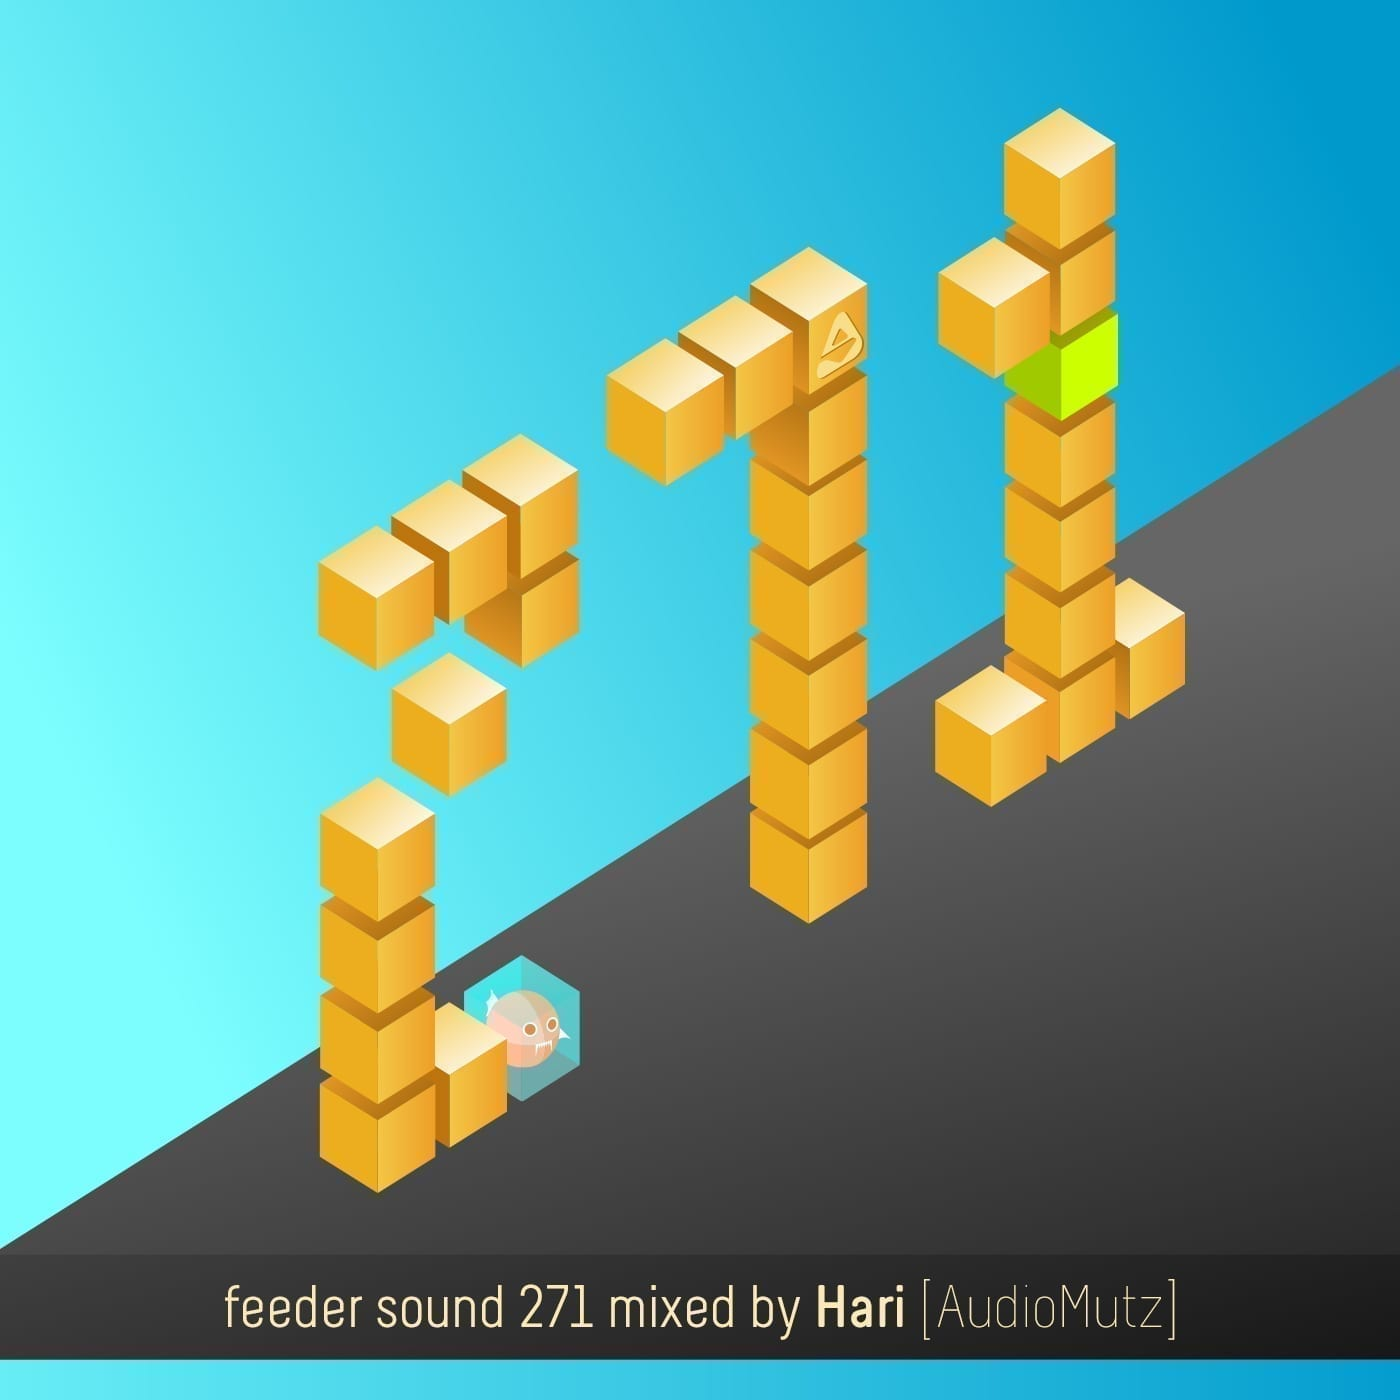 feeder sound 271 mixed by Hari [AudioMutz] 01